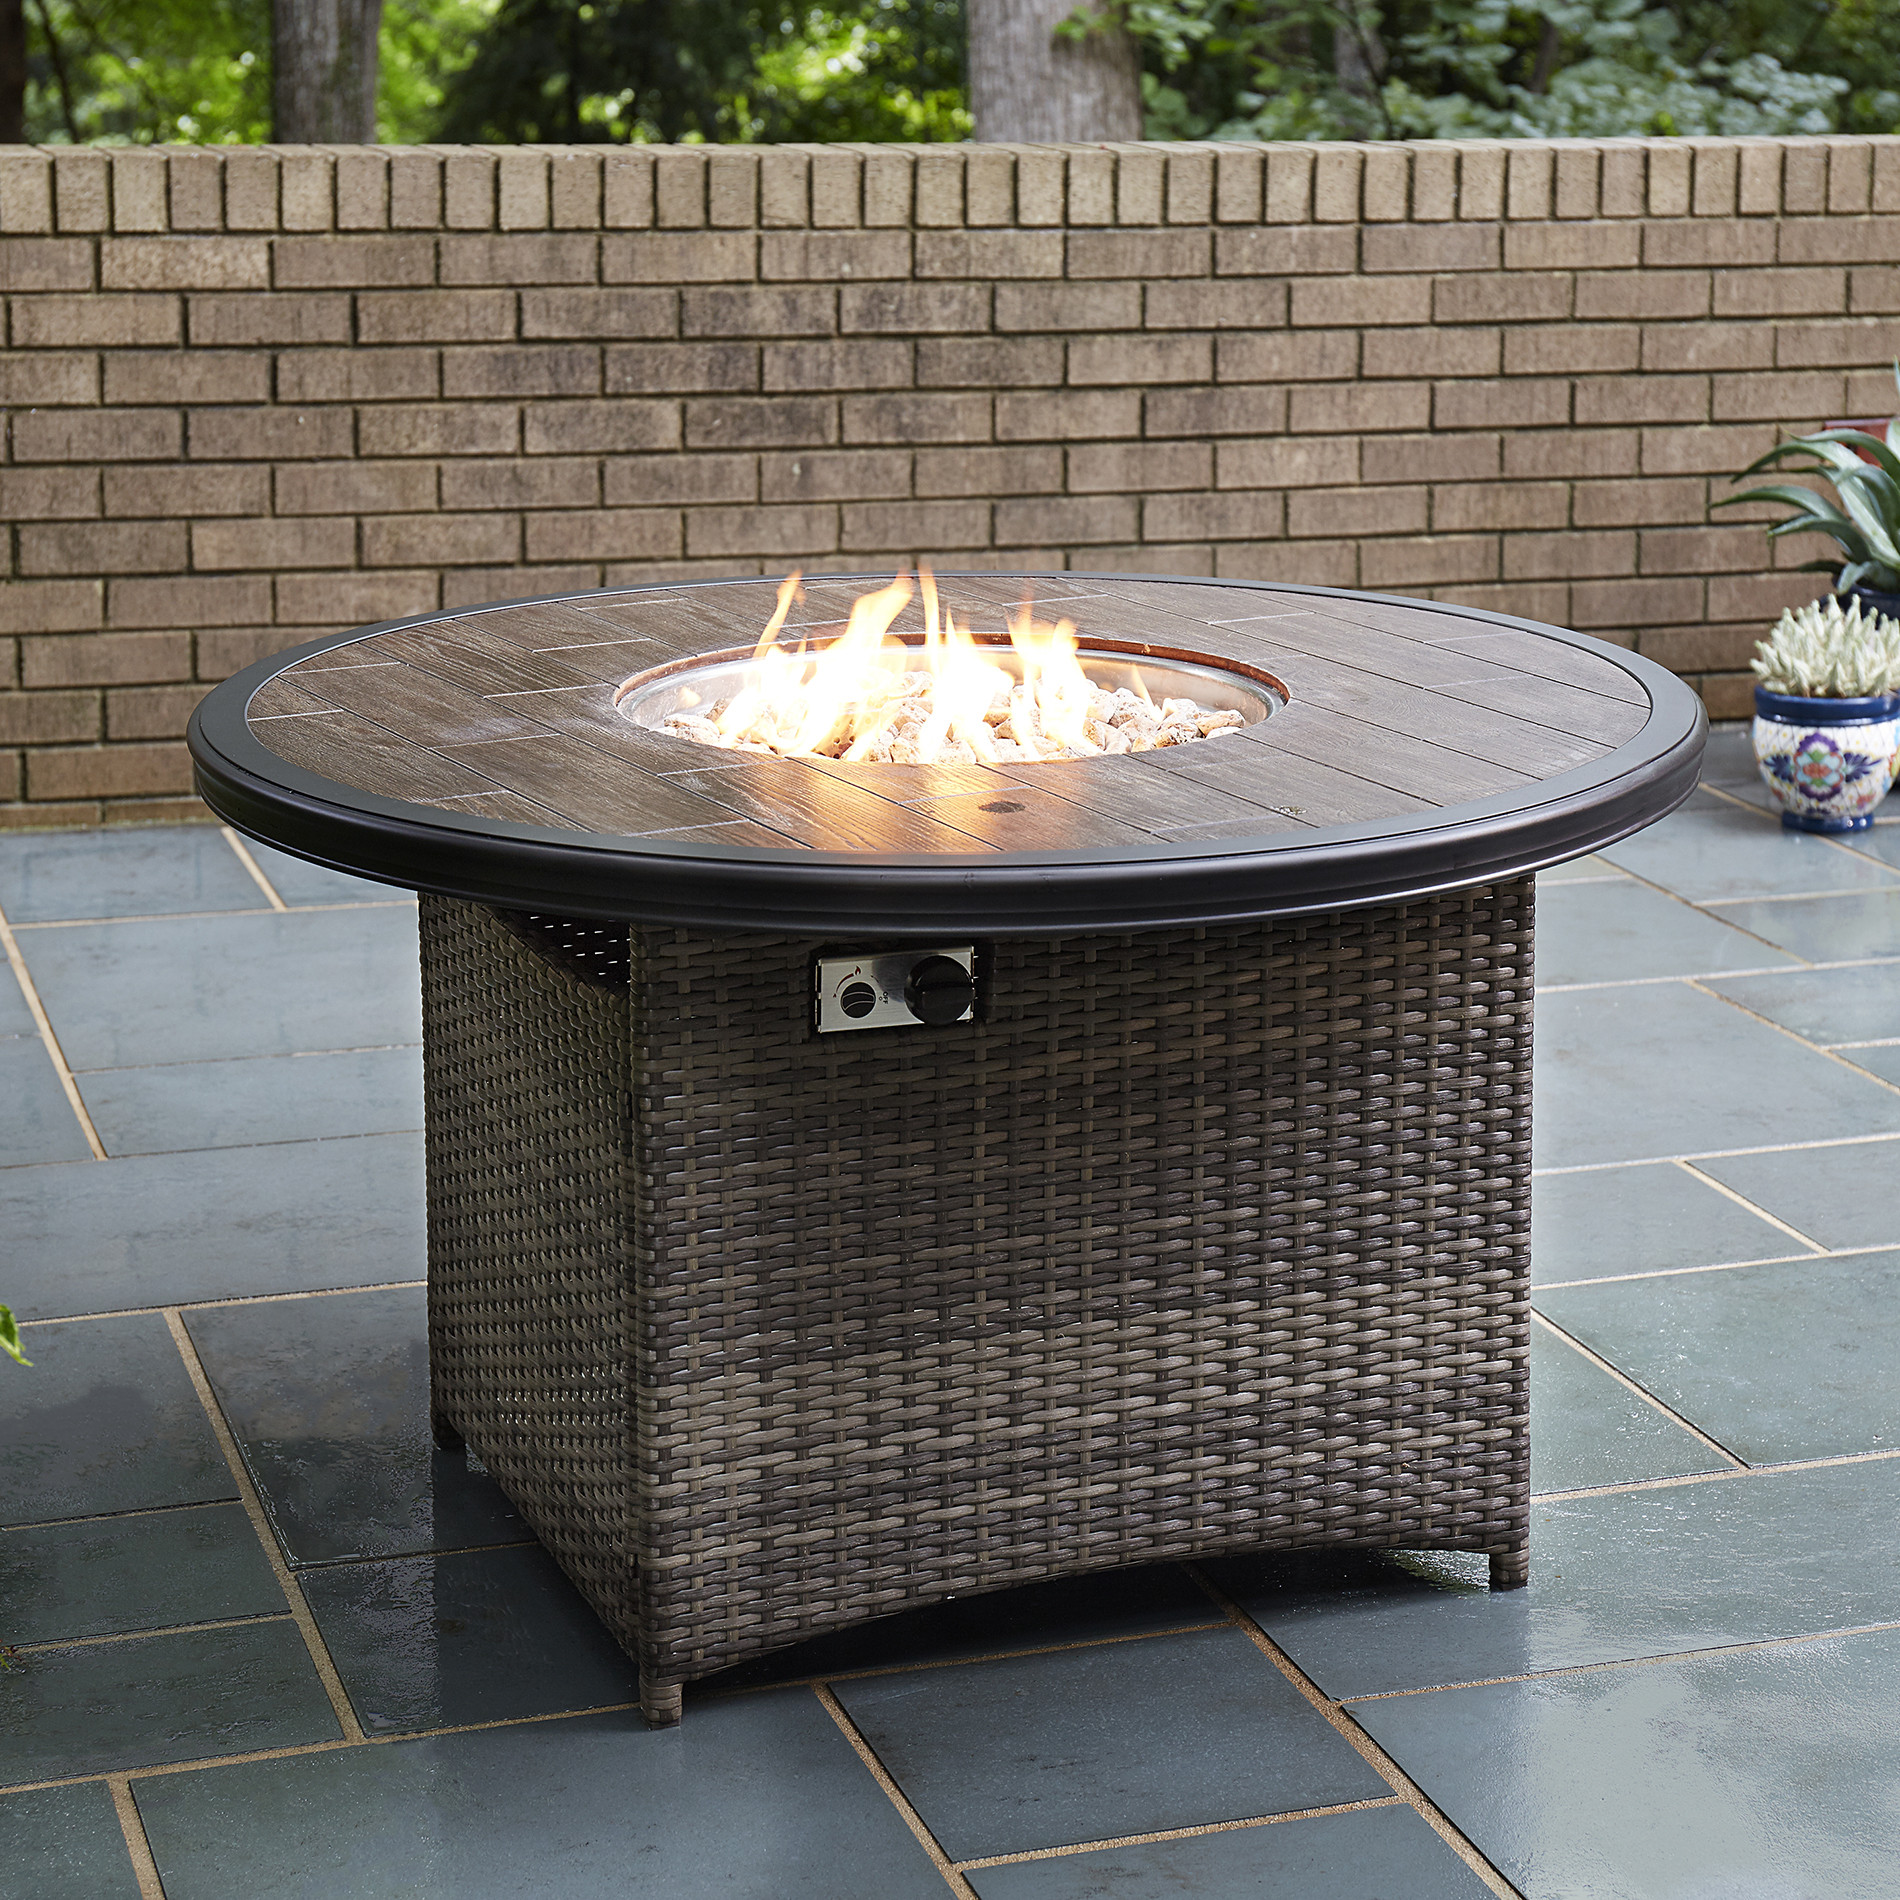 Best ideas about Fire Pit Dining Table . Save or Pin Grand Resort Monterey Fire Pit Dining Table Limited Now.